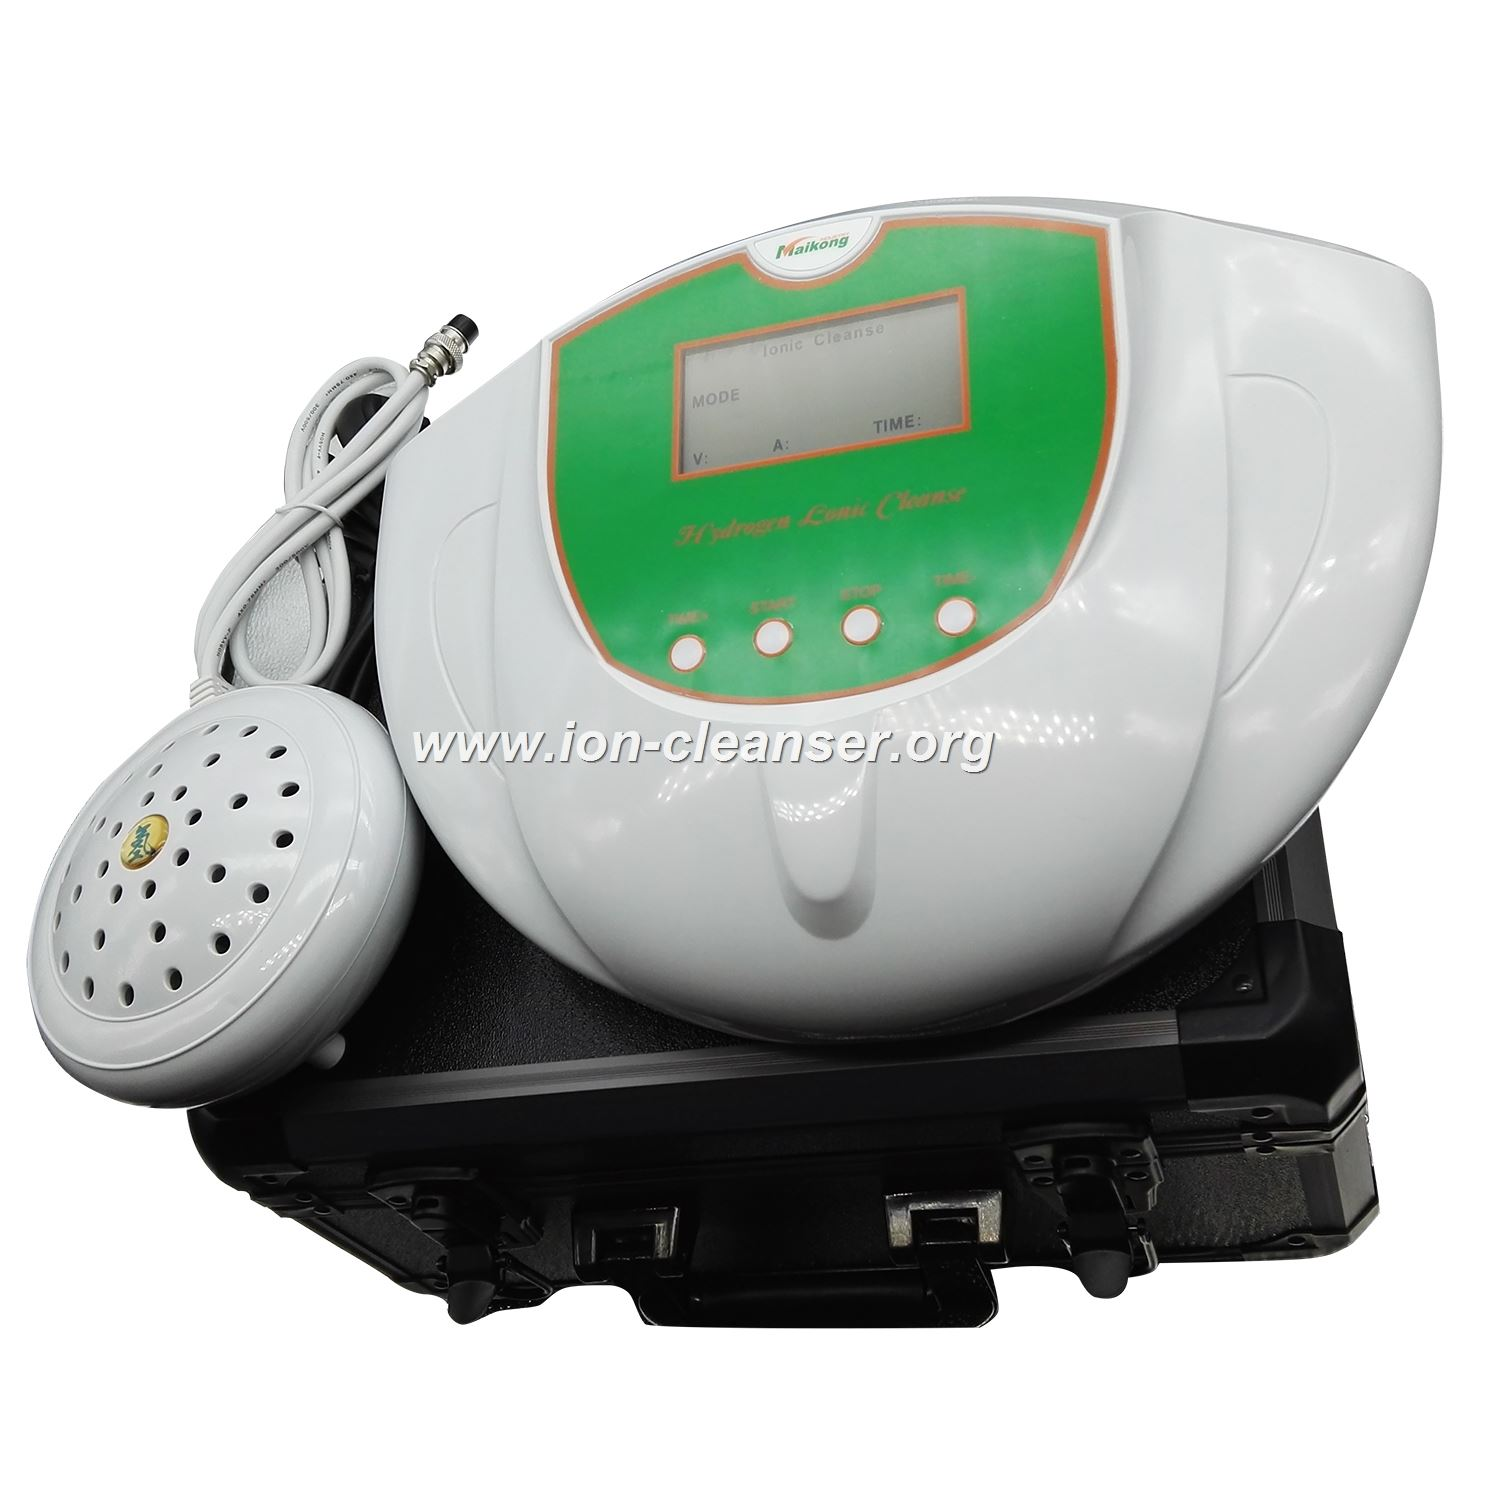 dtoxa cell machine price